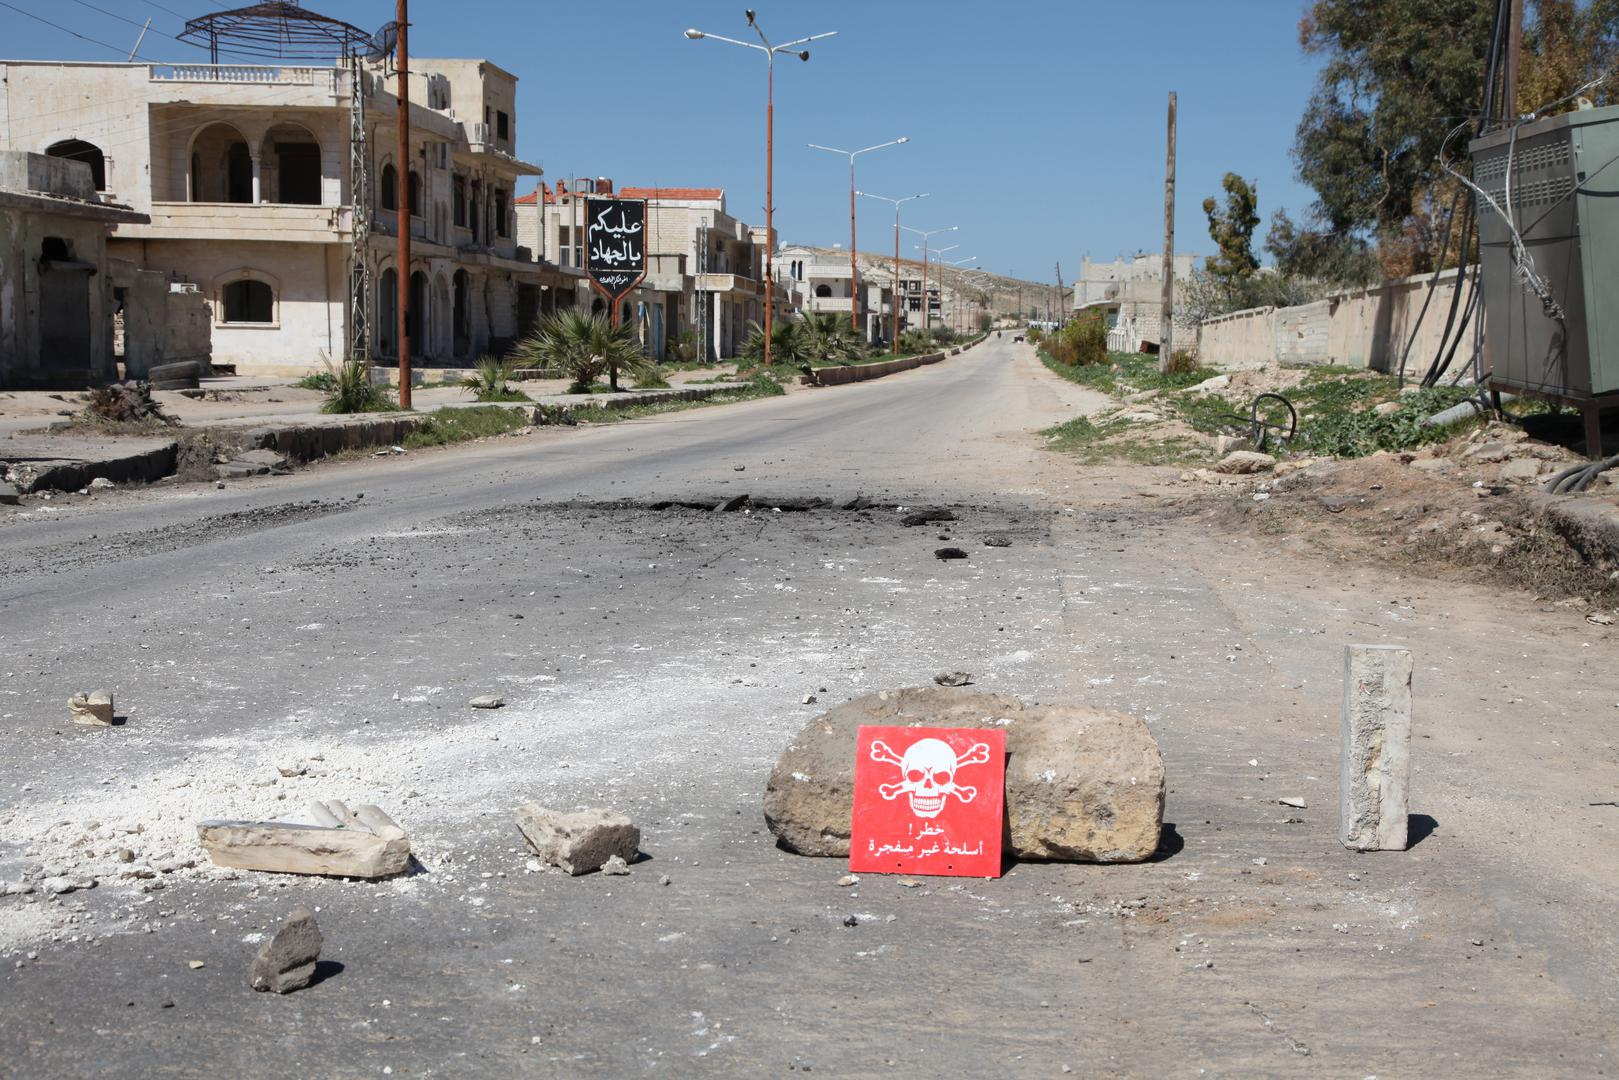 A poison hazard danger sign is seen in the town of Khan Sheikhoun, Idlib province, Syria on April 5, 2017.